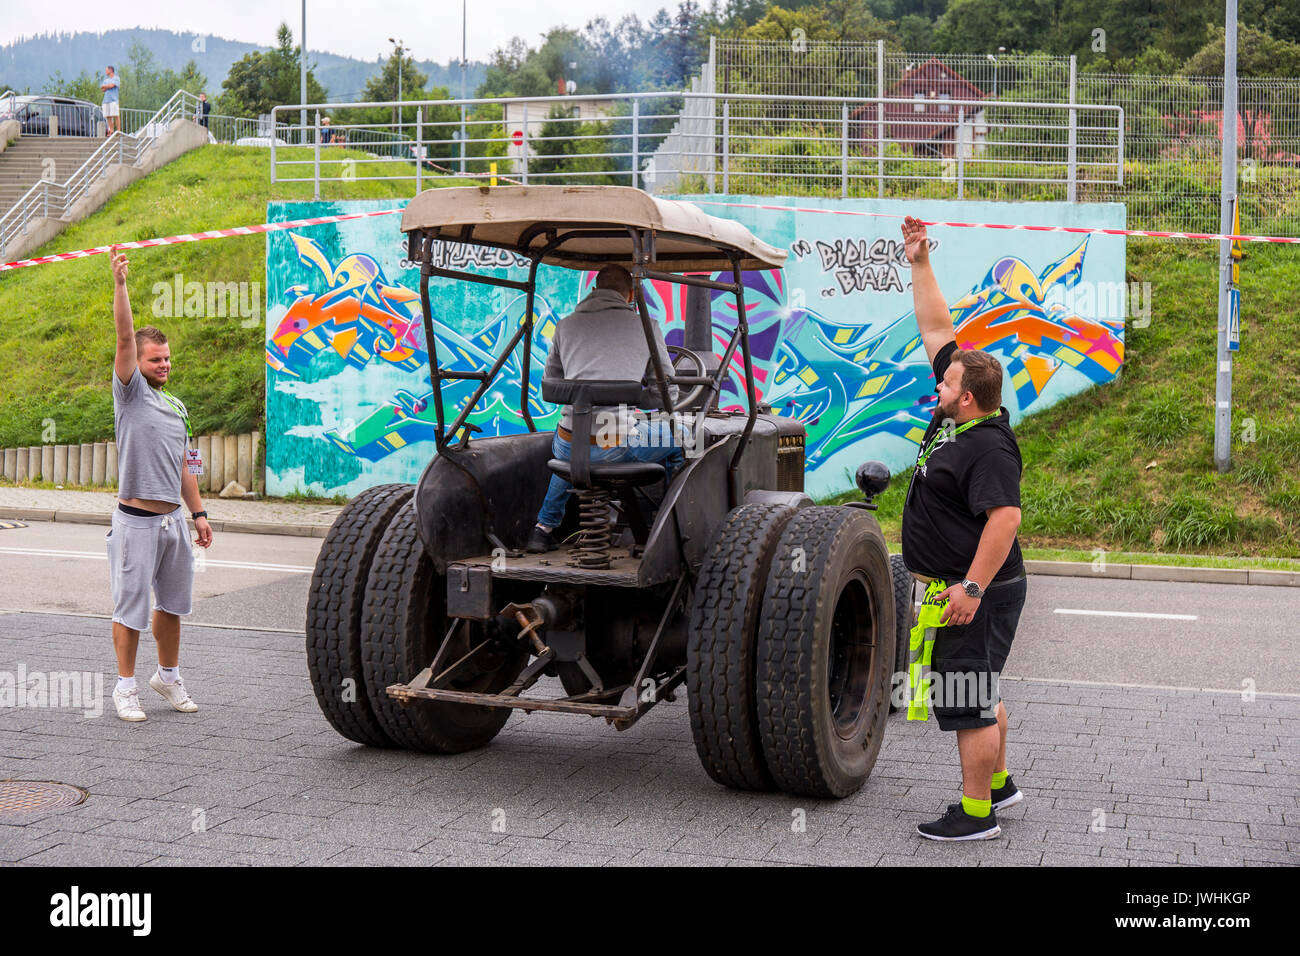 Bielsko-Biala, Poland. 12th Aug, 2017. International automotive trade fairs - MotoShow Bielsko-Biala. Man raising the red-white tape for the Lanz Bulldog tractor. Credit: Lukasz Obermann/Alamy Live News - Stock Image